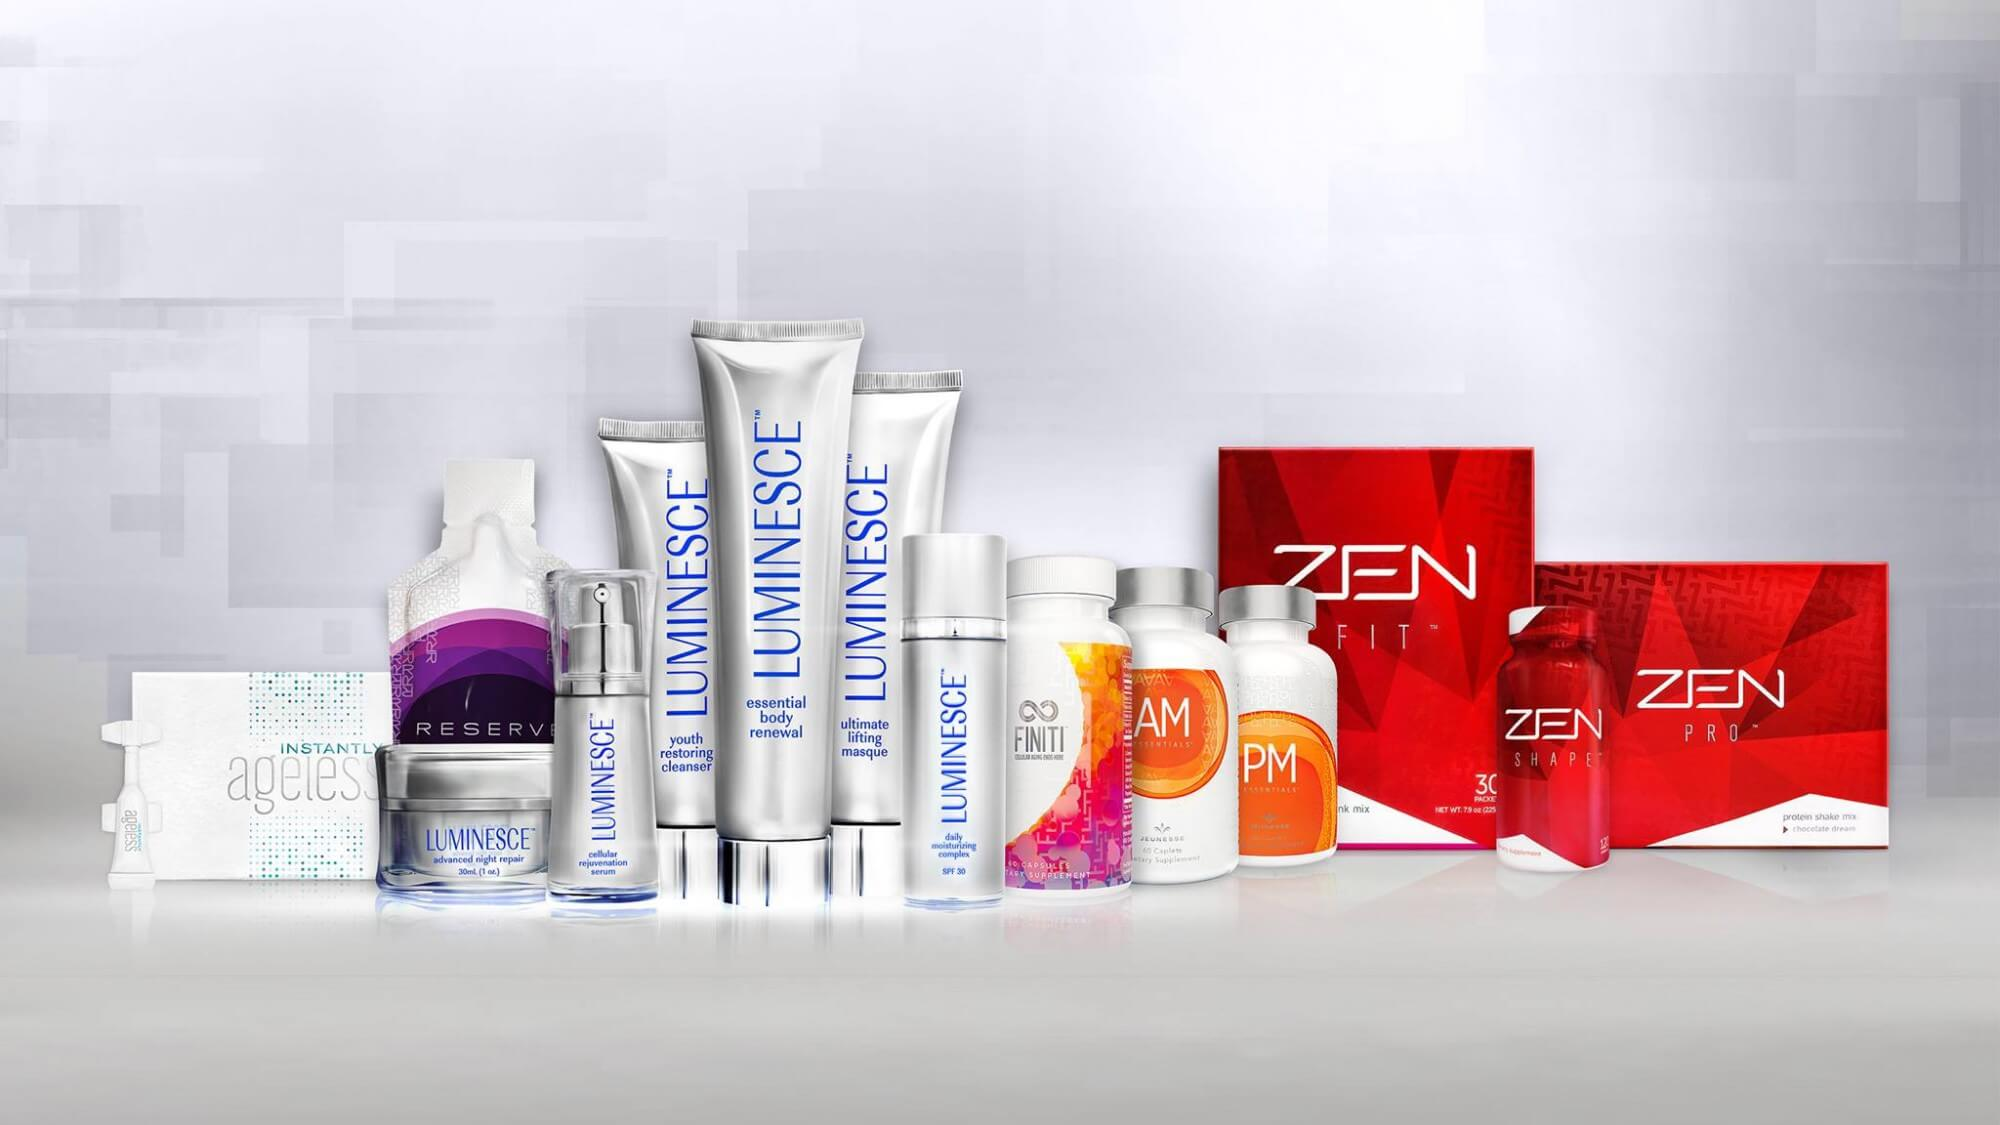 jeunesse global, jeunesse global deutschland, jeunesse global kritik, jeunesse global erfahrungen, jeunesse global erfahrung, jeunesse global umsatz, jeunesse global legal, jeunesse global amazon, jeunesse global bewertung, jeunesse global blog, jeunesse global deutschland erfahrungen, jeunesse global diamond, jeunesse global deutschland produkte, jeunesse global diabetes jeunesse global germany, jeunesse global holdings, jeunesse global in deutschland, jeunesse global illegal, jeunesse global inhaltsstoffe, jeunesse global in germany, jeunesse global jade, jeunesse global join, jeunesse global kaufen, jeunesse global kosmetik, jeunesse global kosmetika, jeunesse global luminesce, jeunesse global marketing plan, jeunesse global mlm, jeunesse global maske, jeunesse global marketing, jeunesse global network marketing, jeunesse global network, jeunesse global negative reviews, jeunesse global news, jeunesse global produkte, jeunesse global preise, jeunesse global product reviews, jeunesse global reviews, jeunesse global review, jeunesse global revenue, jeunesse global sapphire, jeunesse global serioes, jeunesse global scam, jeunesse global schneeball, jeunesse global schlechte erfahrungen, jeunesse global verguetungsplan deutsch, jeunesse global verbraucherschutz, jeunesse global vertrieb deutschland, jeunesse global vidacell, jeunesse global vegan, jeunesse global vorher nachher, jeunesse global video, jeunesse global website, jeunesse global youtube, zeitlos jeunesse global, Jeunesse Global unserioes, Jeunesse Global Test